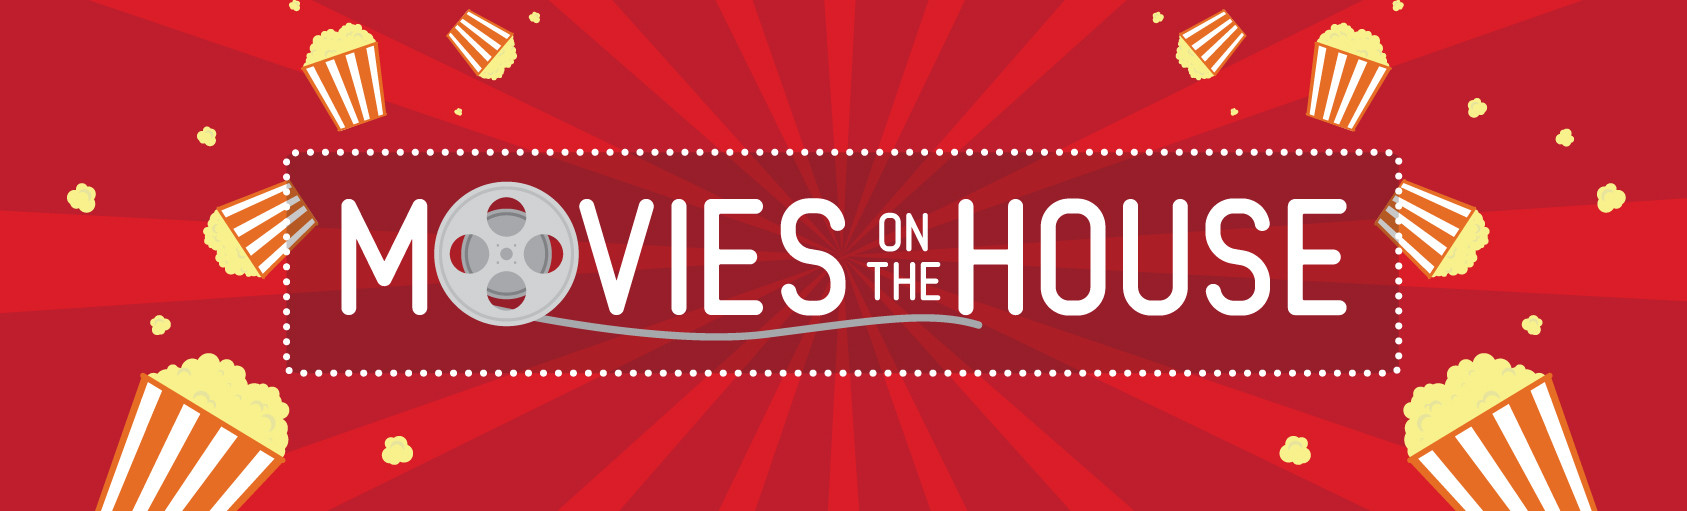 Movies on the House Spring 2019 Banner